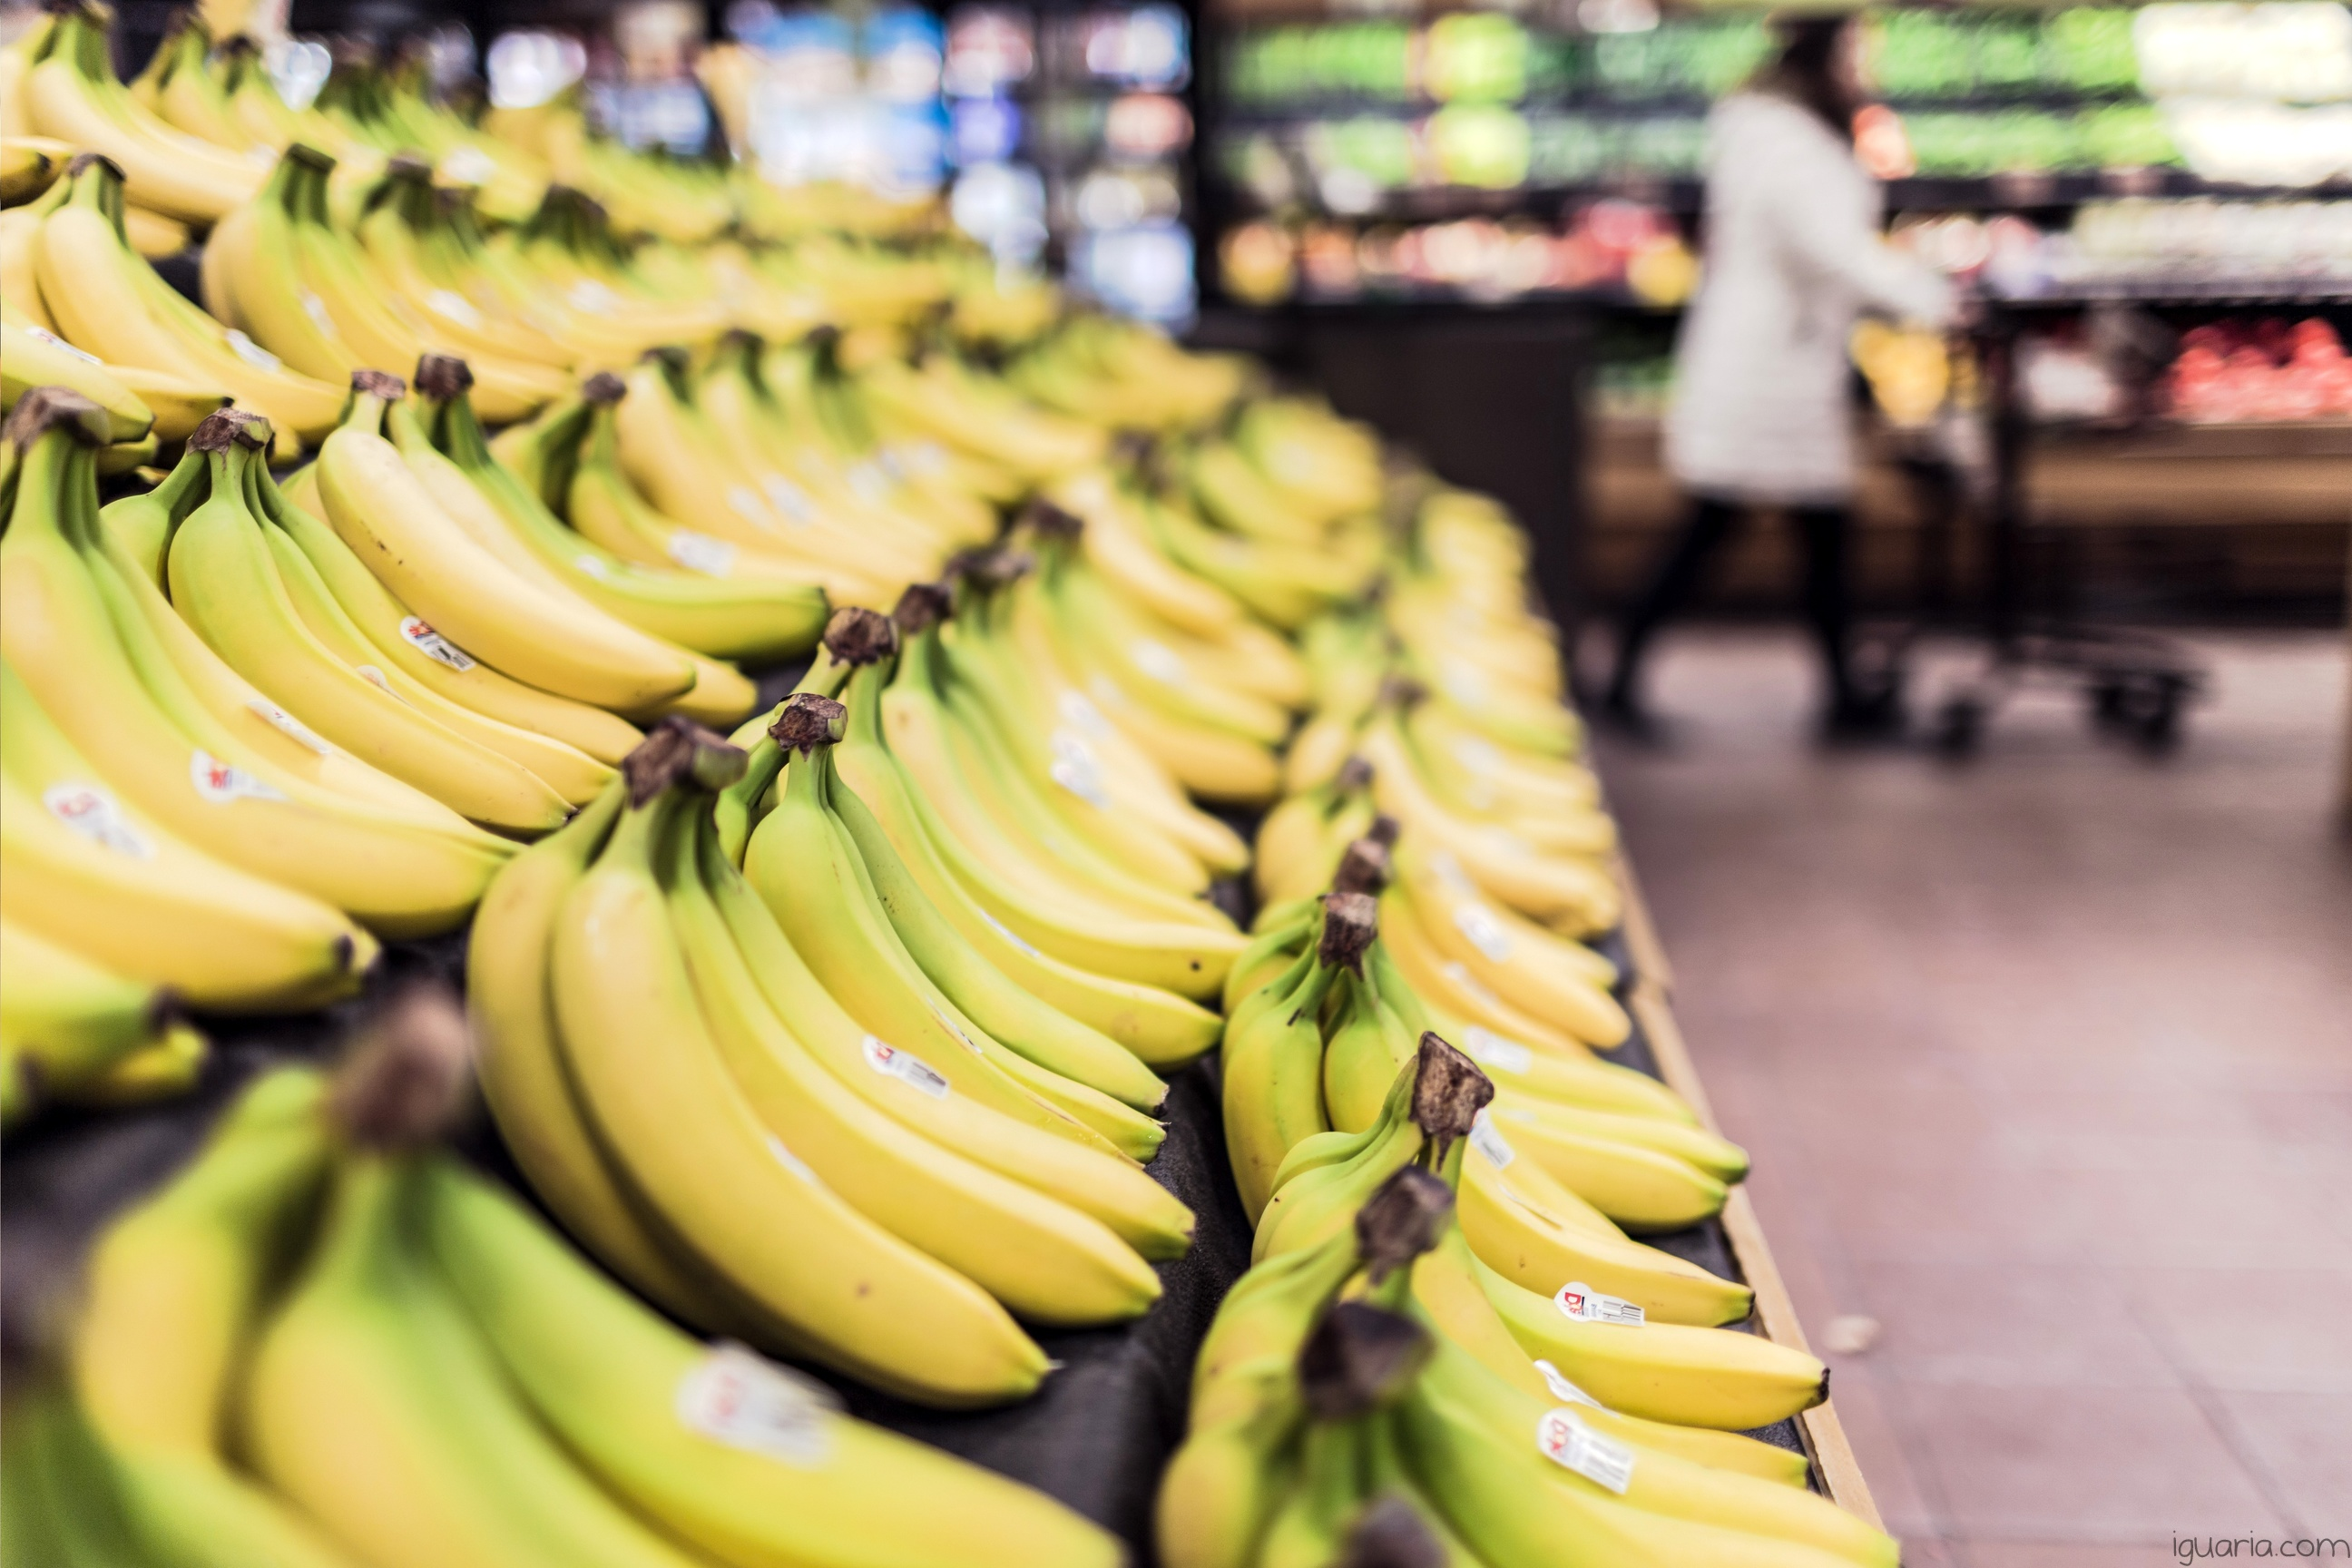 Iguaria_Bananas-no-Supermercado